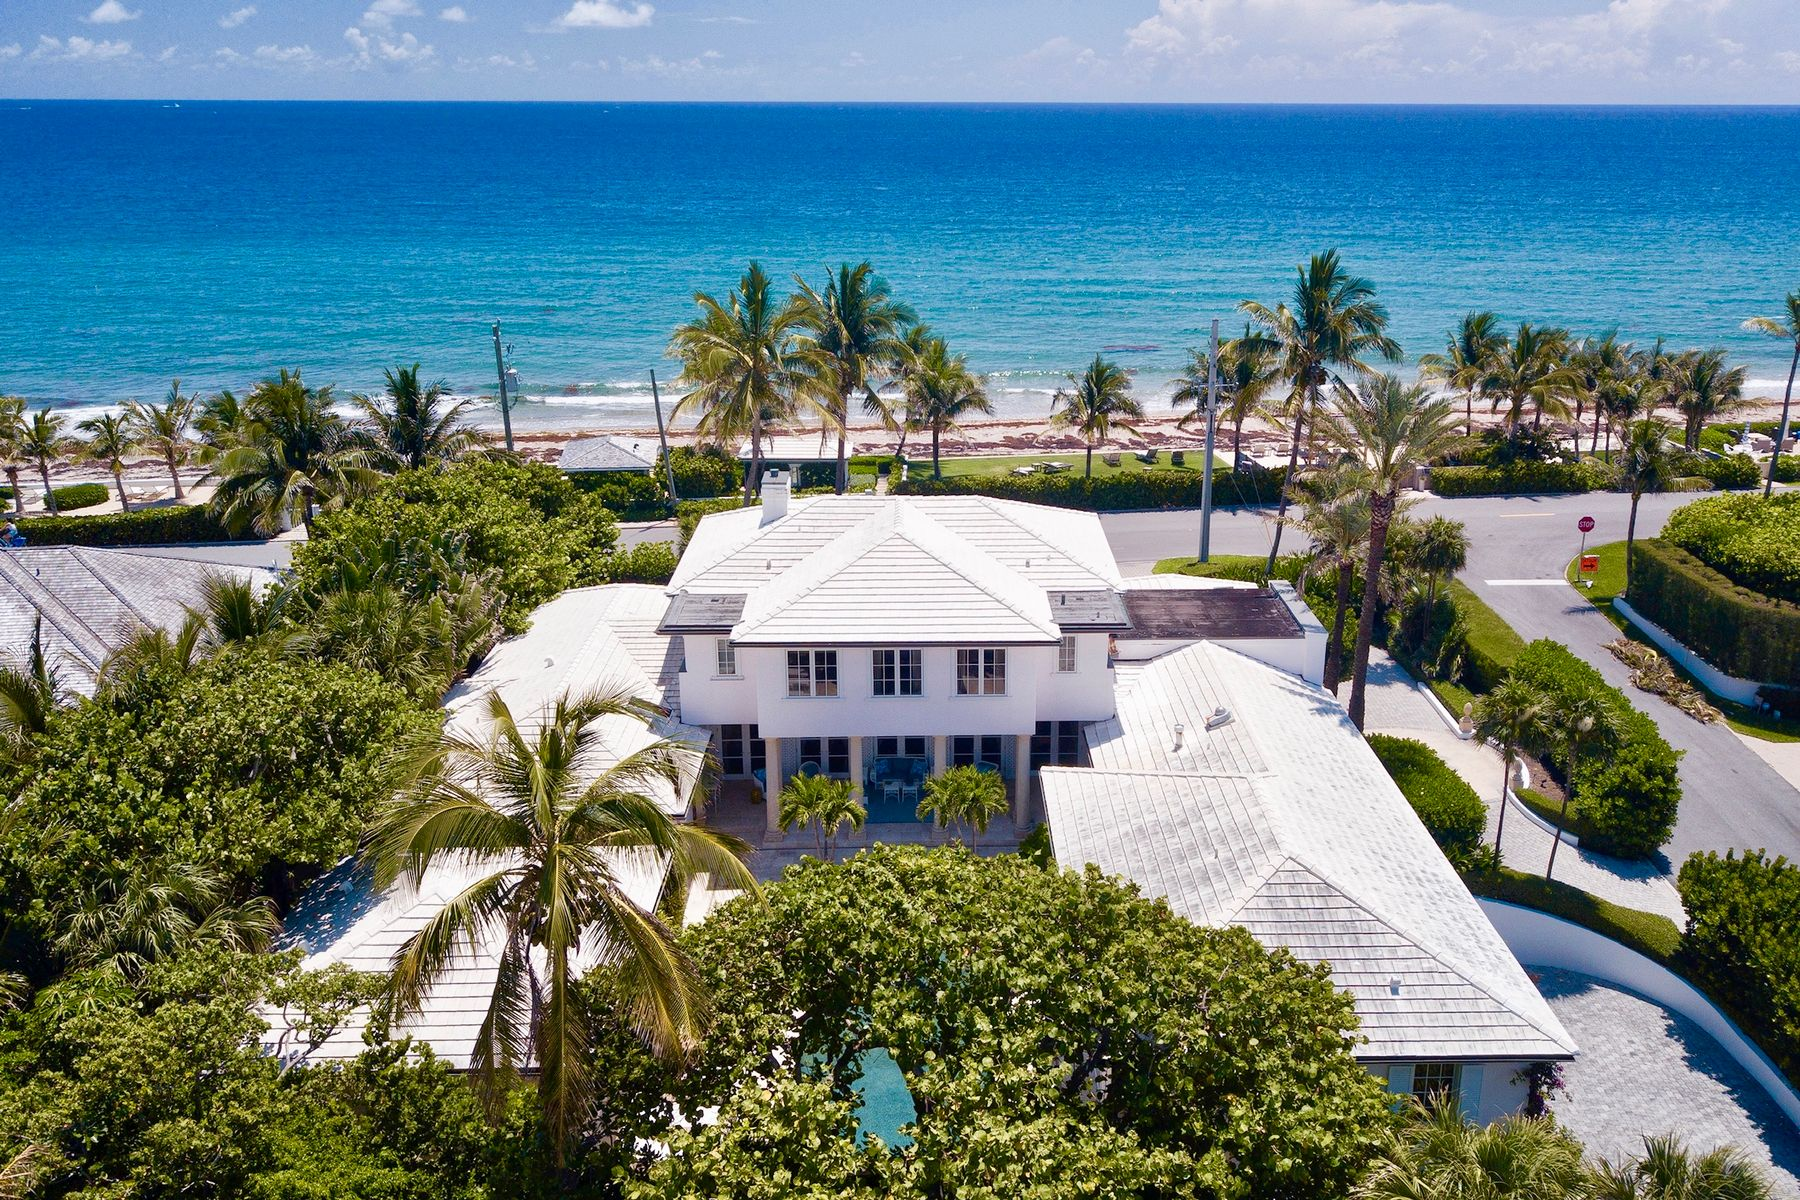 Single Family Homes for Active at Classic Beach House 101 Nightingale Trl Palm Beach, Florida 33480 United States